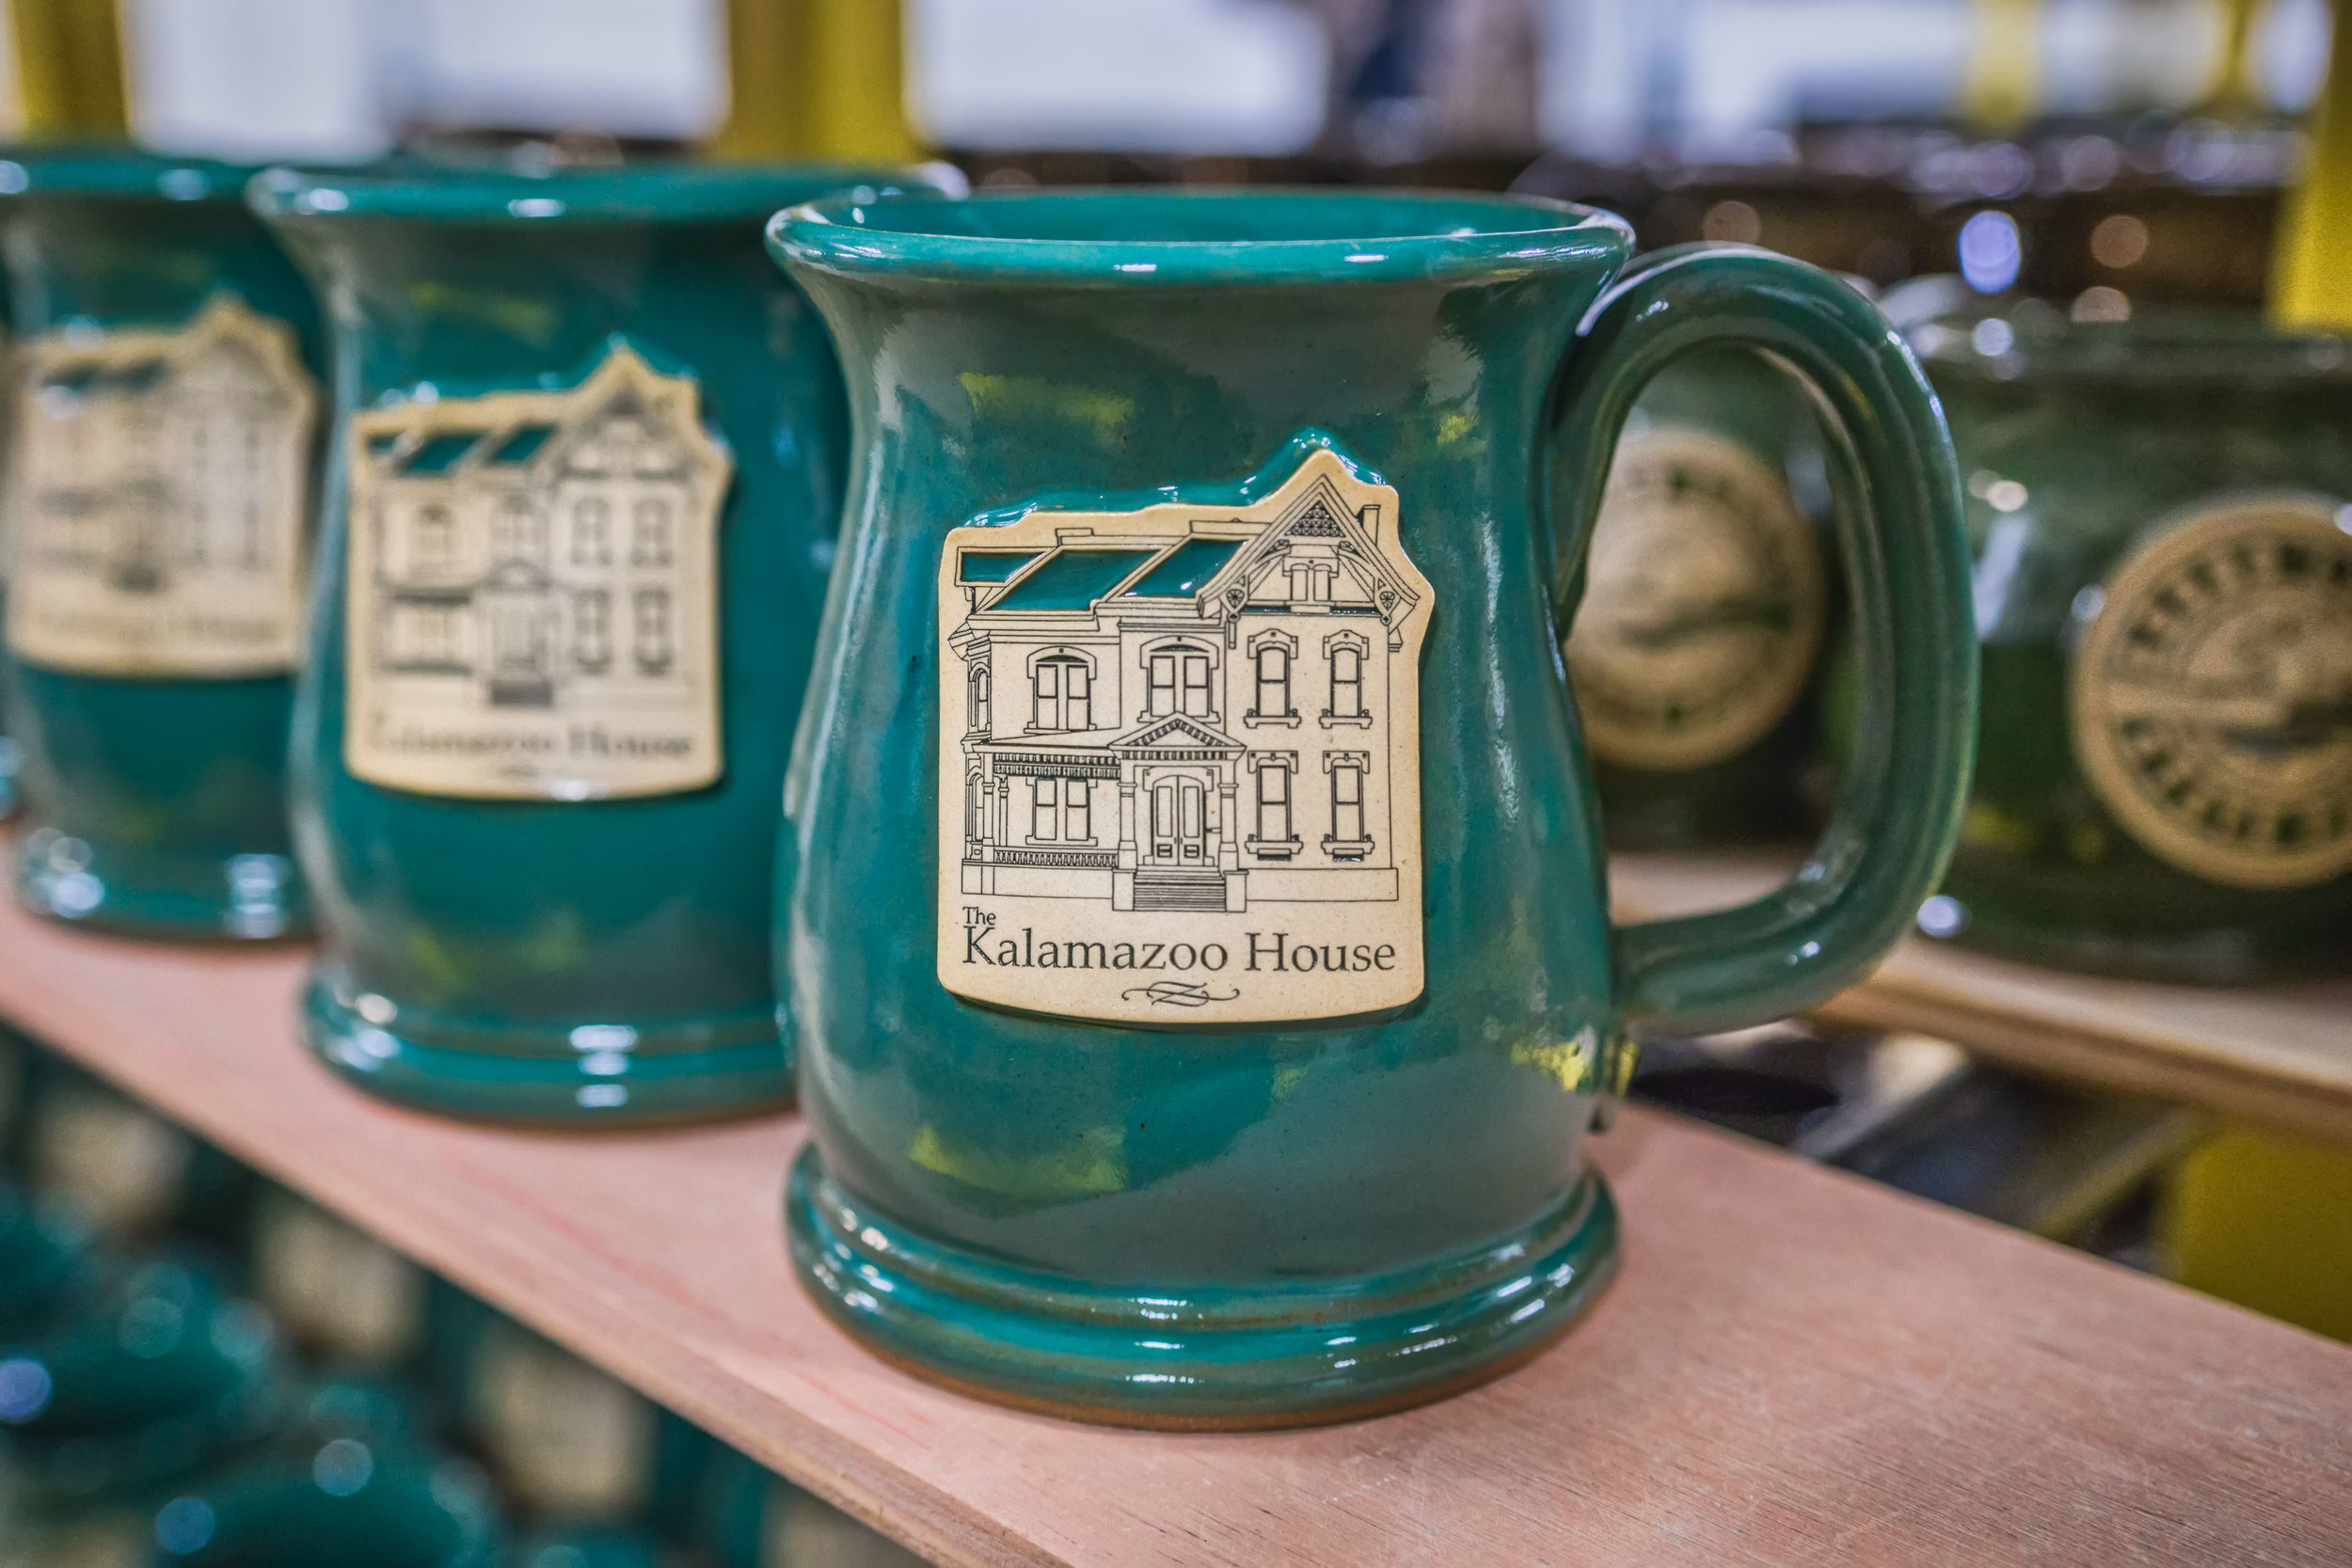 Cozy up to breakfast with your Kalamazoo House mug